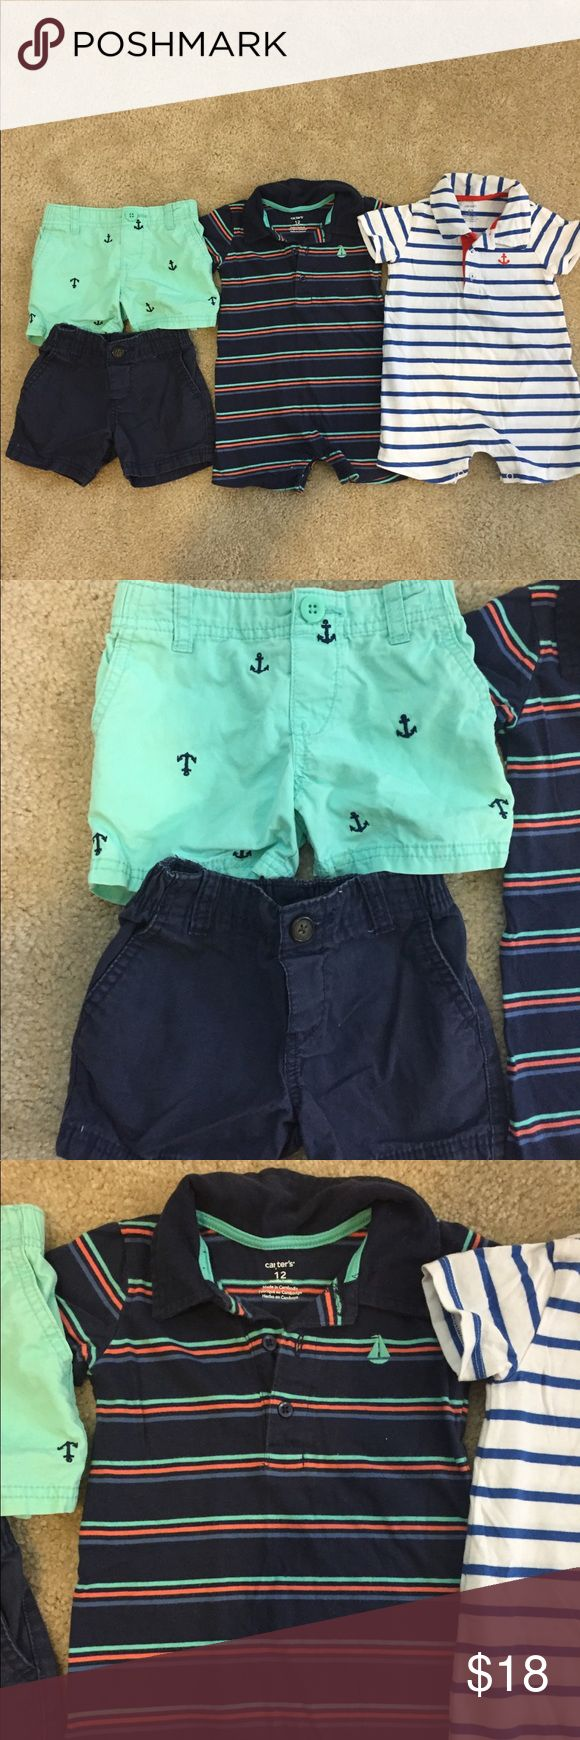 Nautical package ⚓️ 12 months boys nautical package includes 1 navy stripe romper with sailboat embroidery (worn once), 1 white with blue stripe romper with anchor embroidery (washed but never worn), 1 pair of navy shorts, and 1 pair of light/mint green shorts with anchor embroidery all over. Can be broken up and any item sold separately just let me know Carter's One Pieces